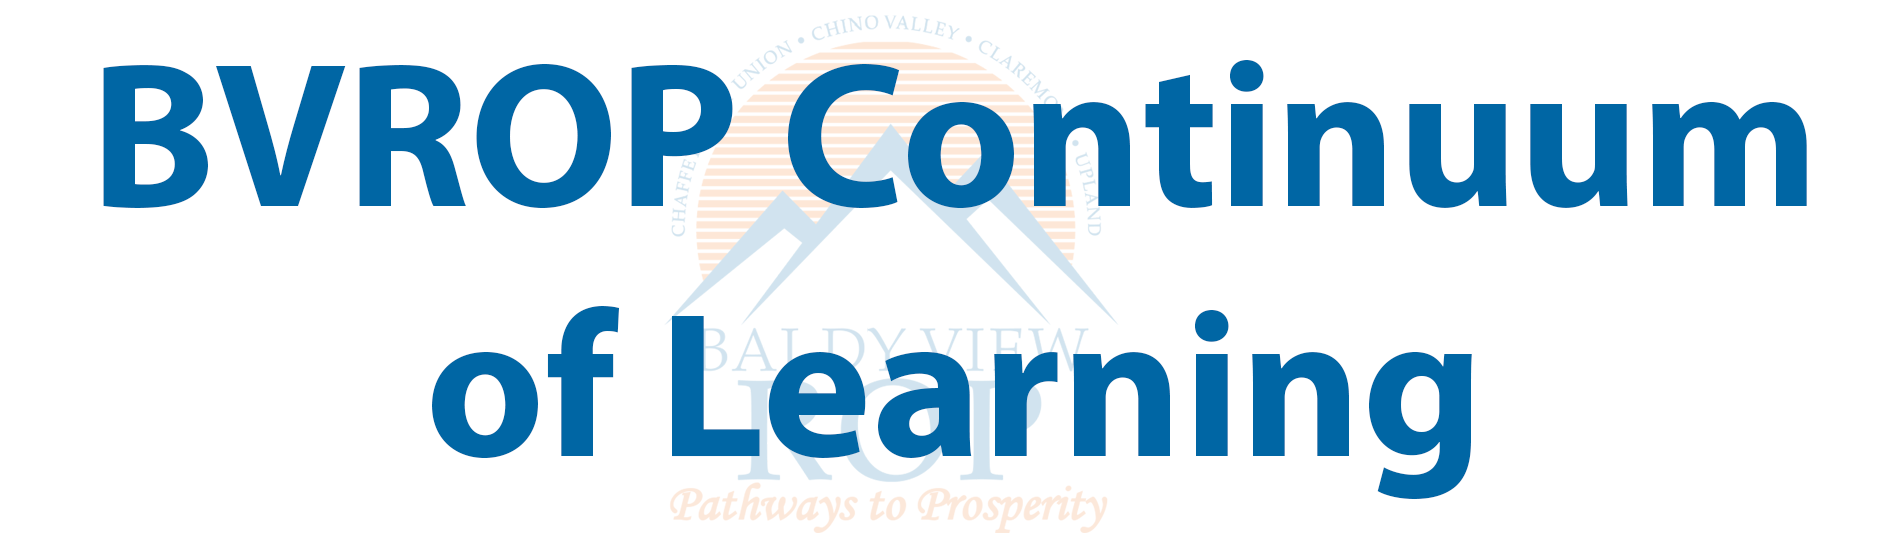 BVROP Continuum of Learning